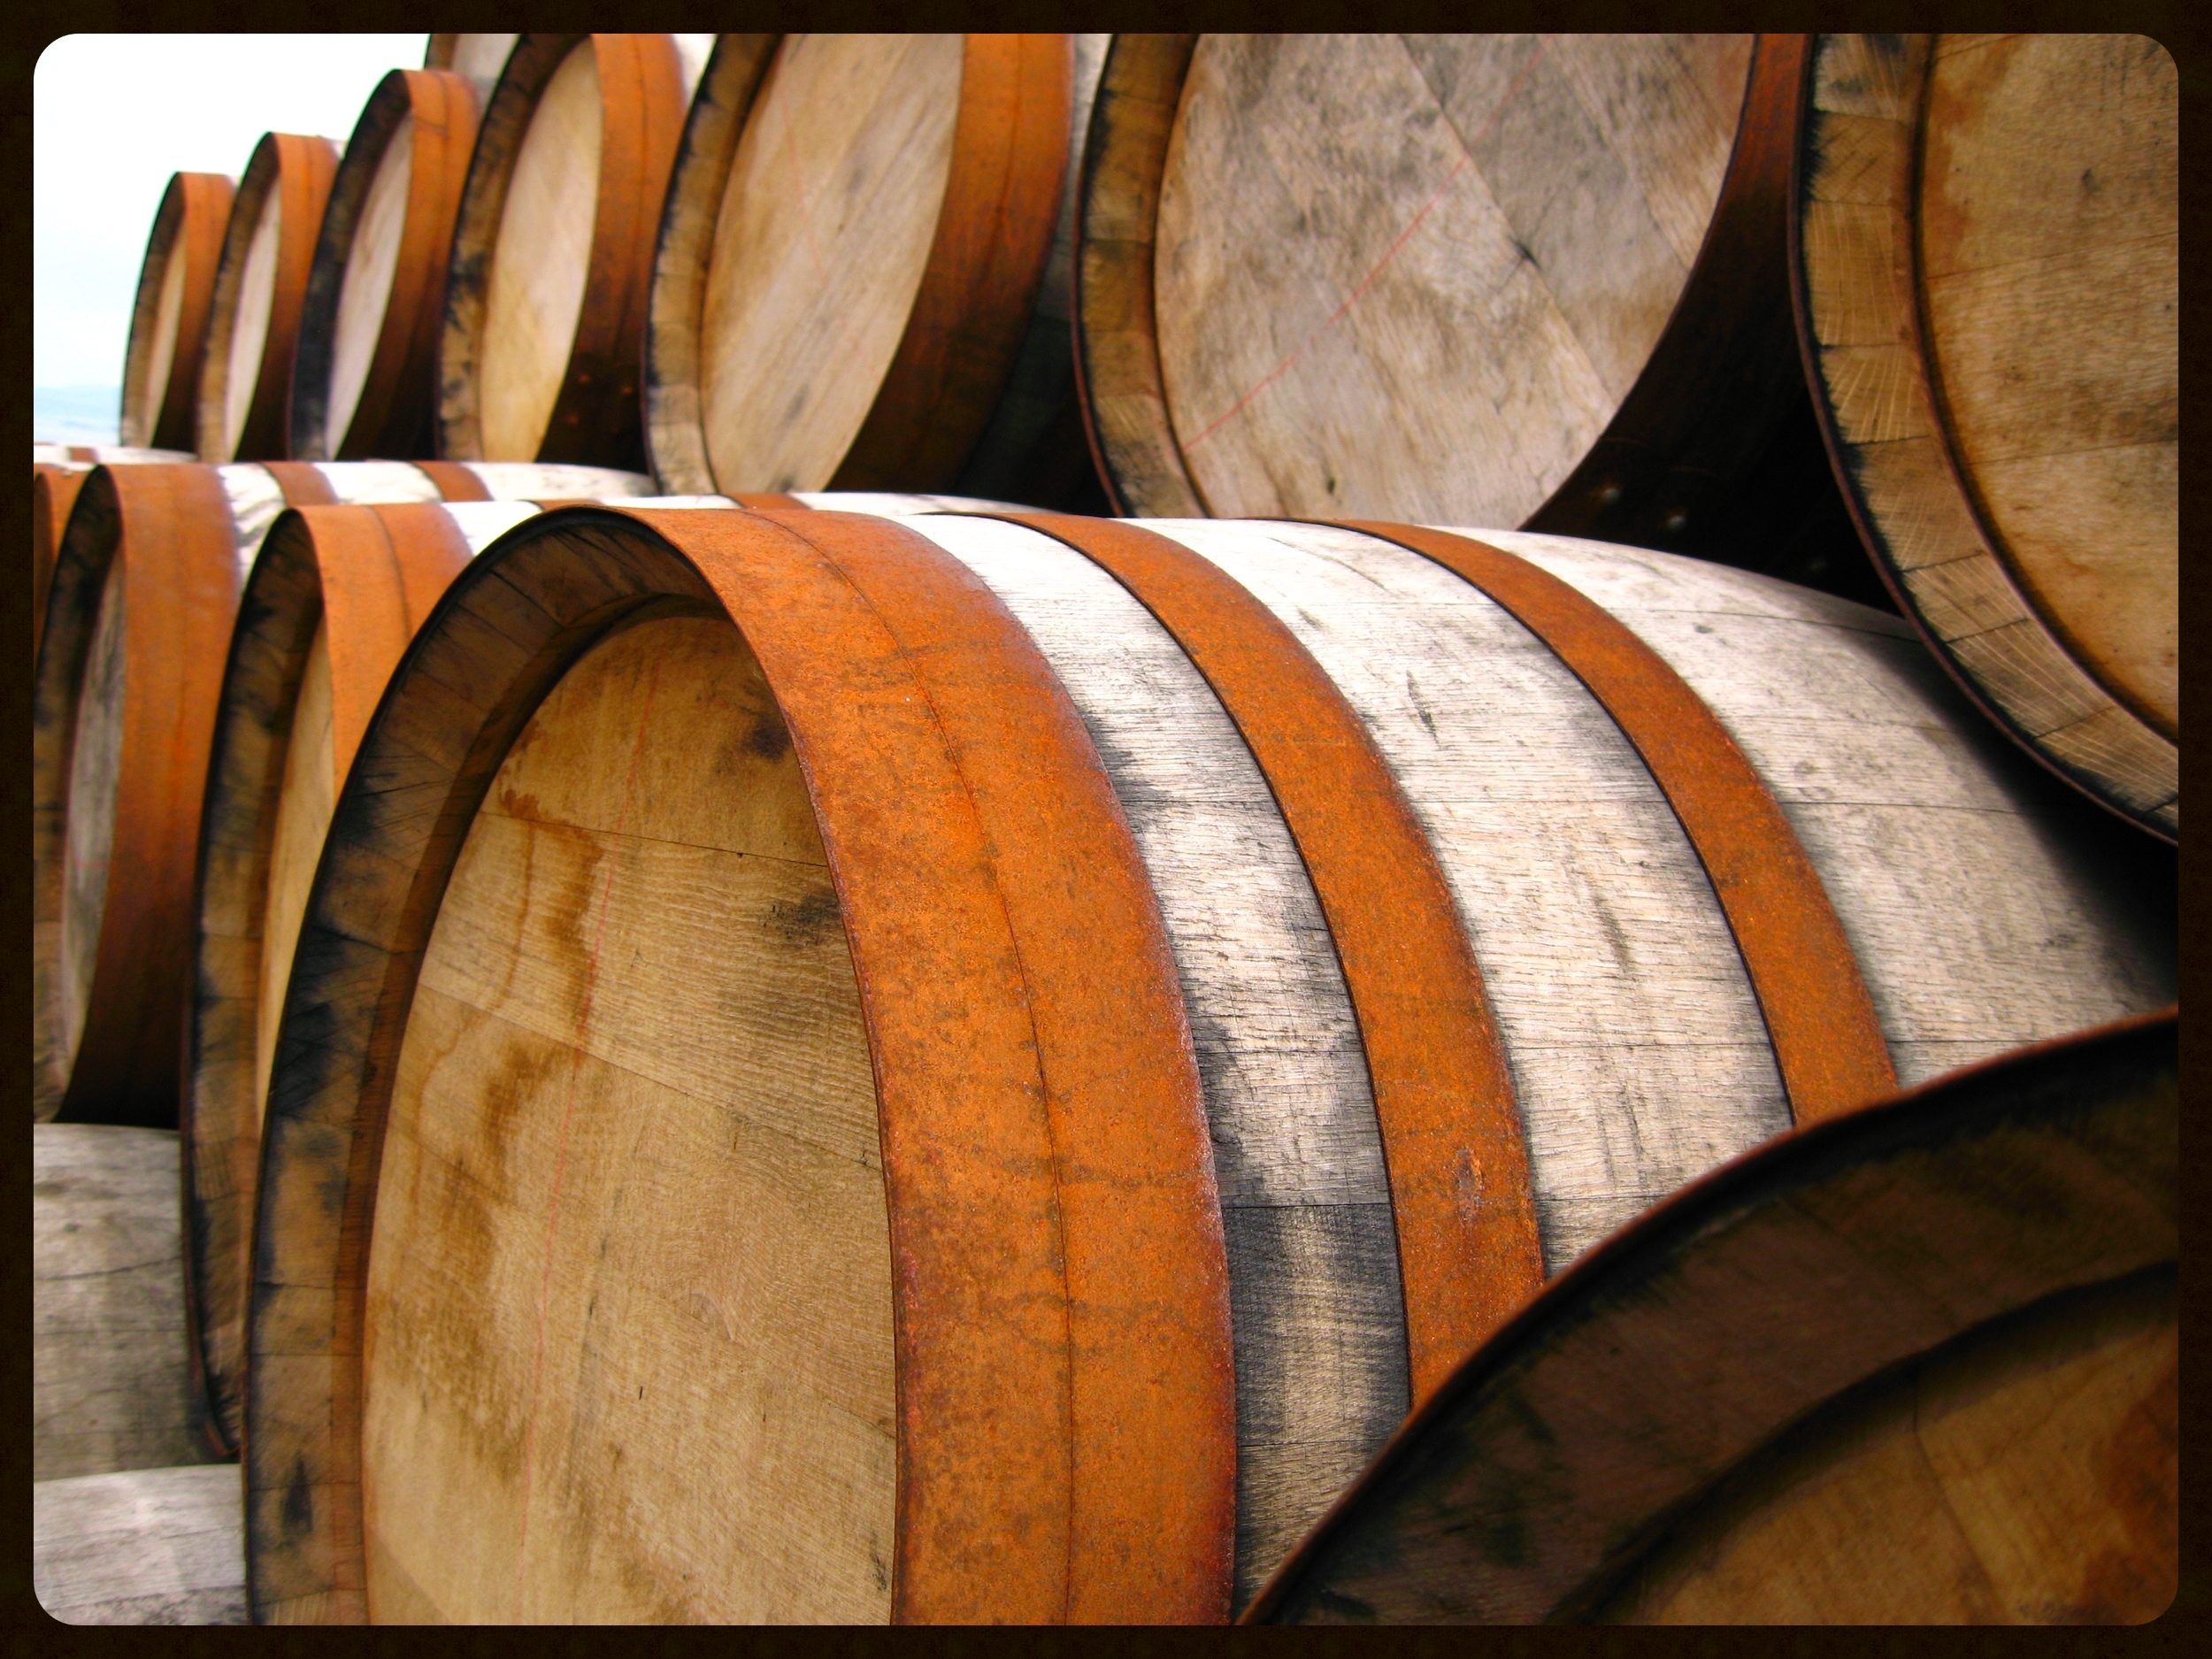 Casks waiting to be filled with new make spirit.